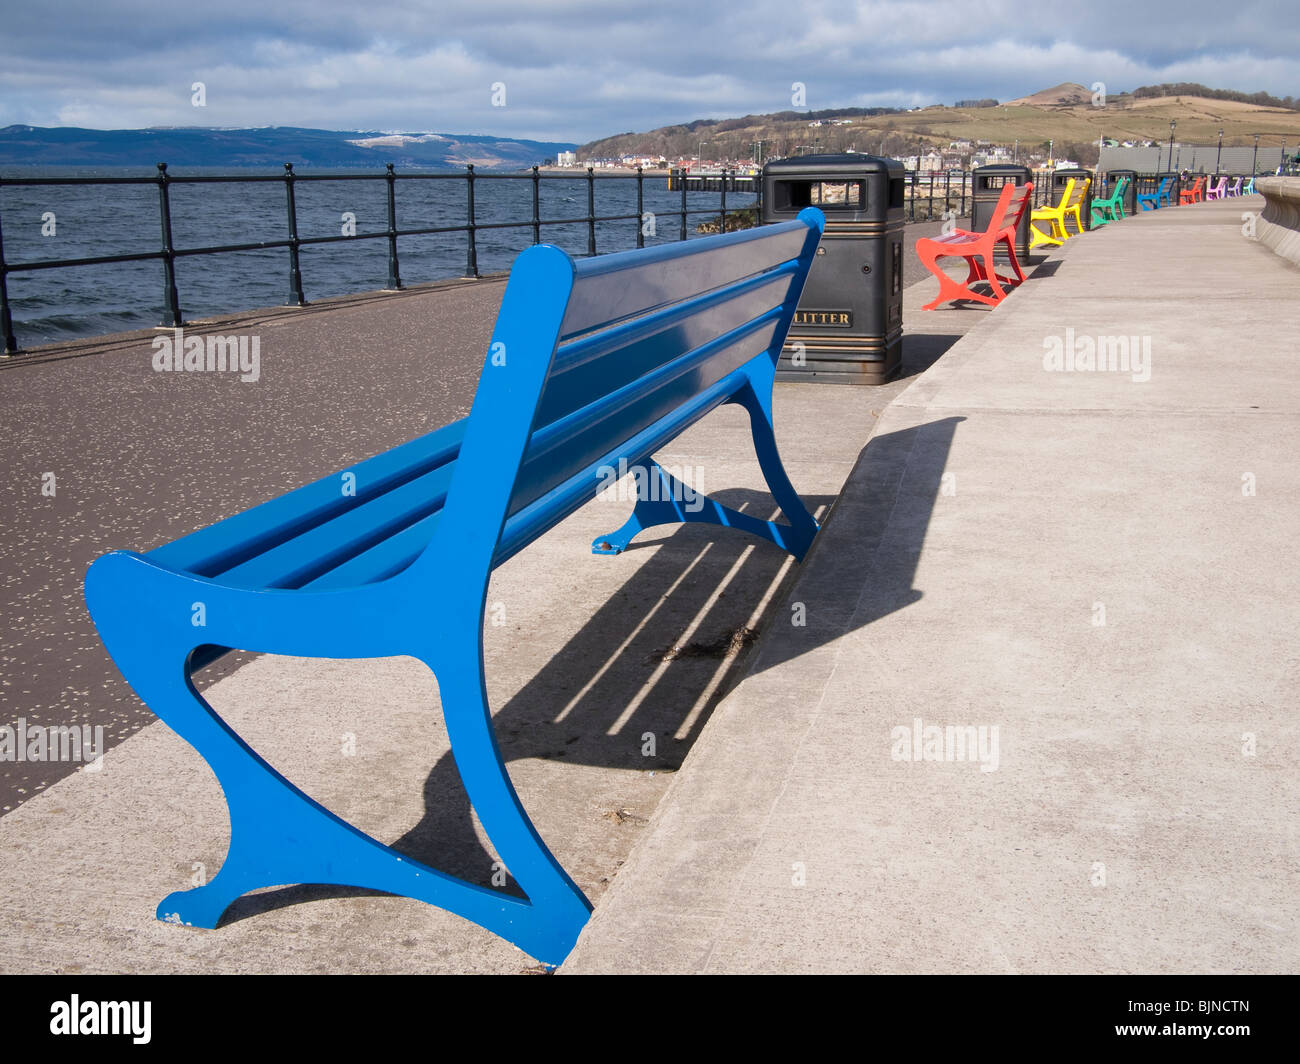 Coloured Park Benches, Largs, Scotland - Stock Image